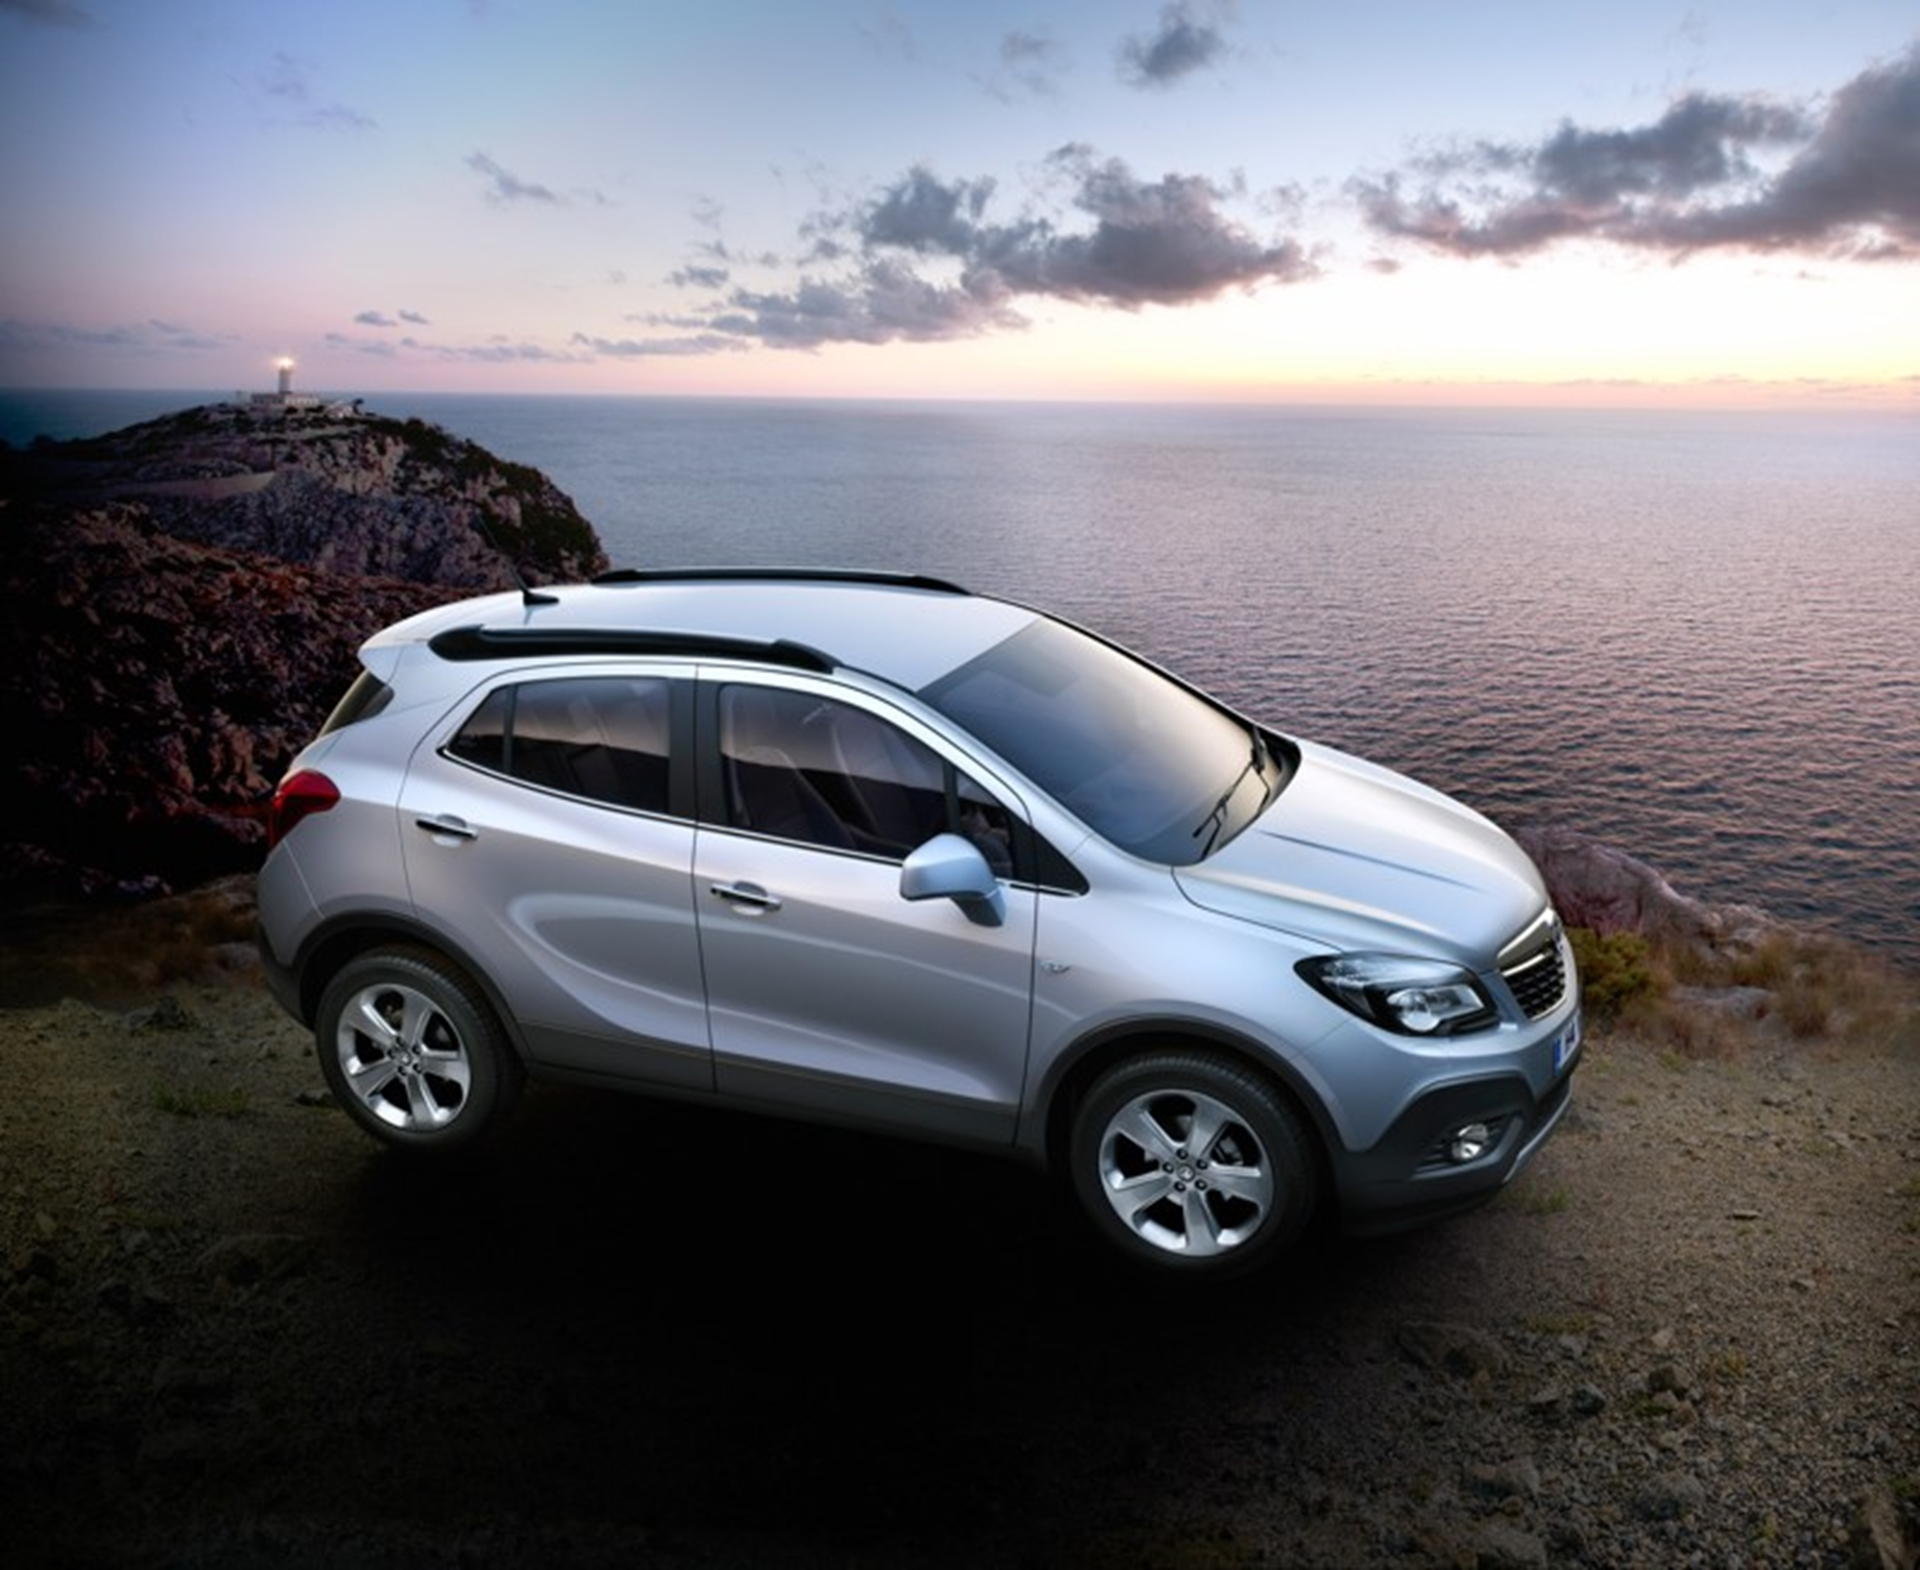 The Vauxhall Mokka